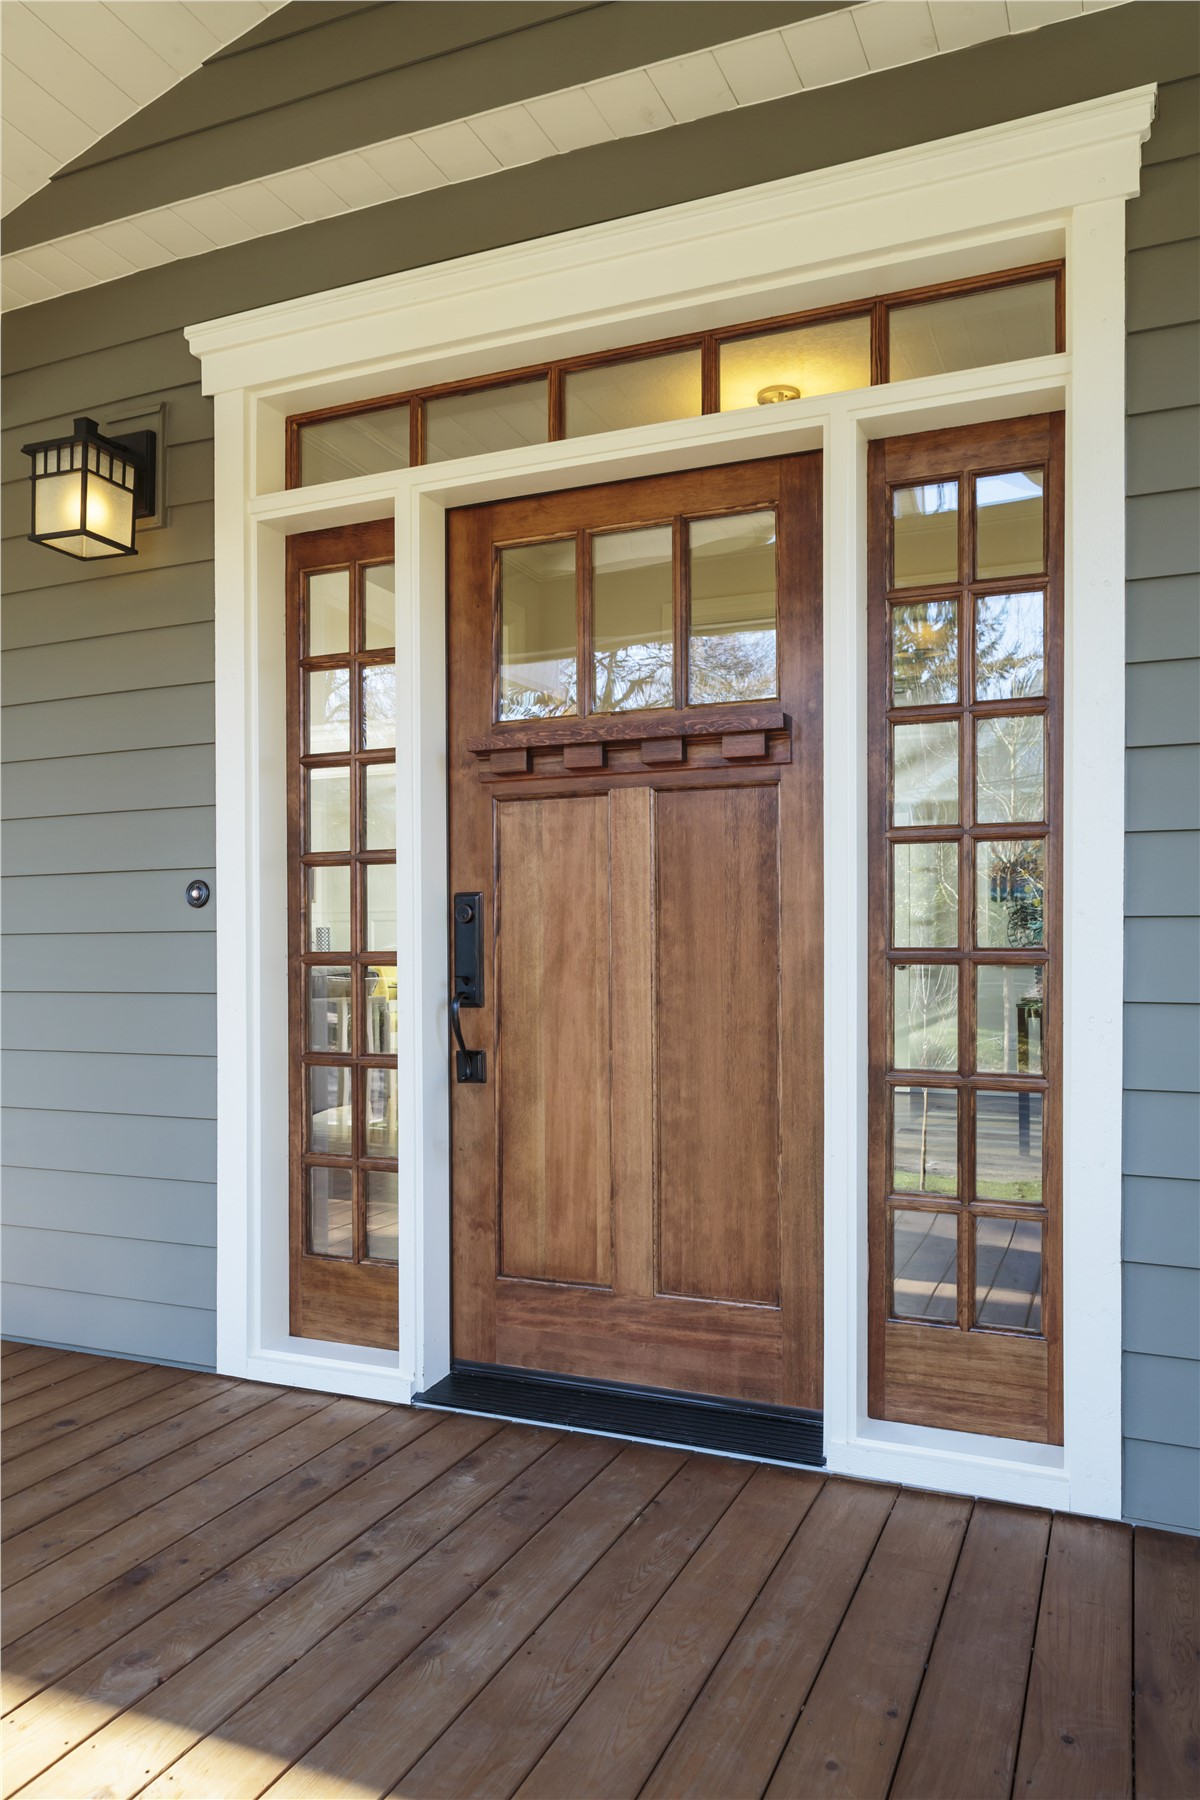 ellicott replacement windows and home our door doors services installation remodeling city